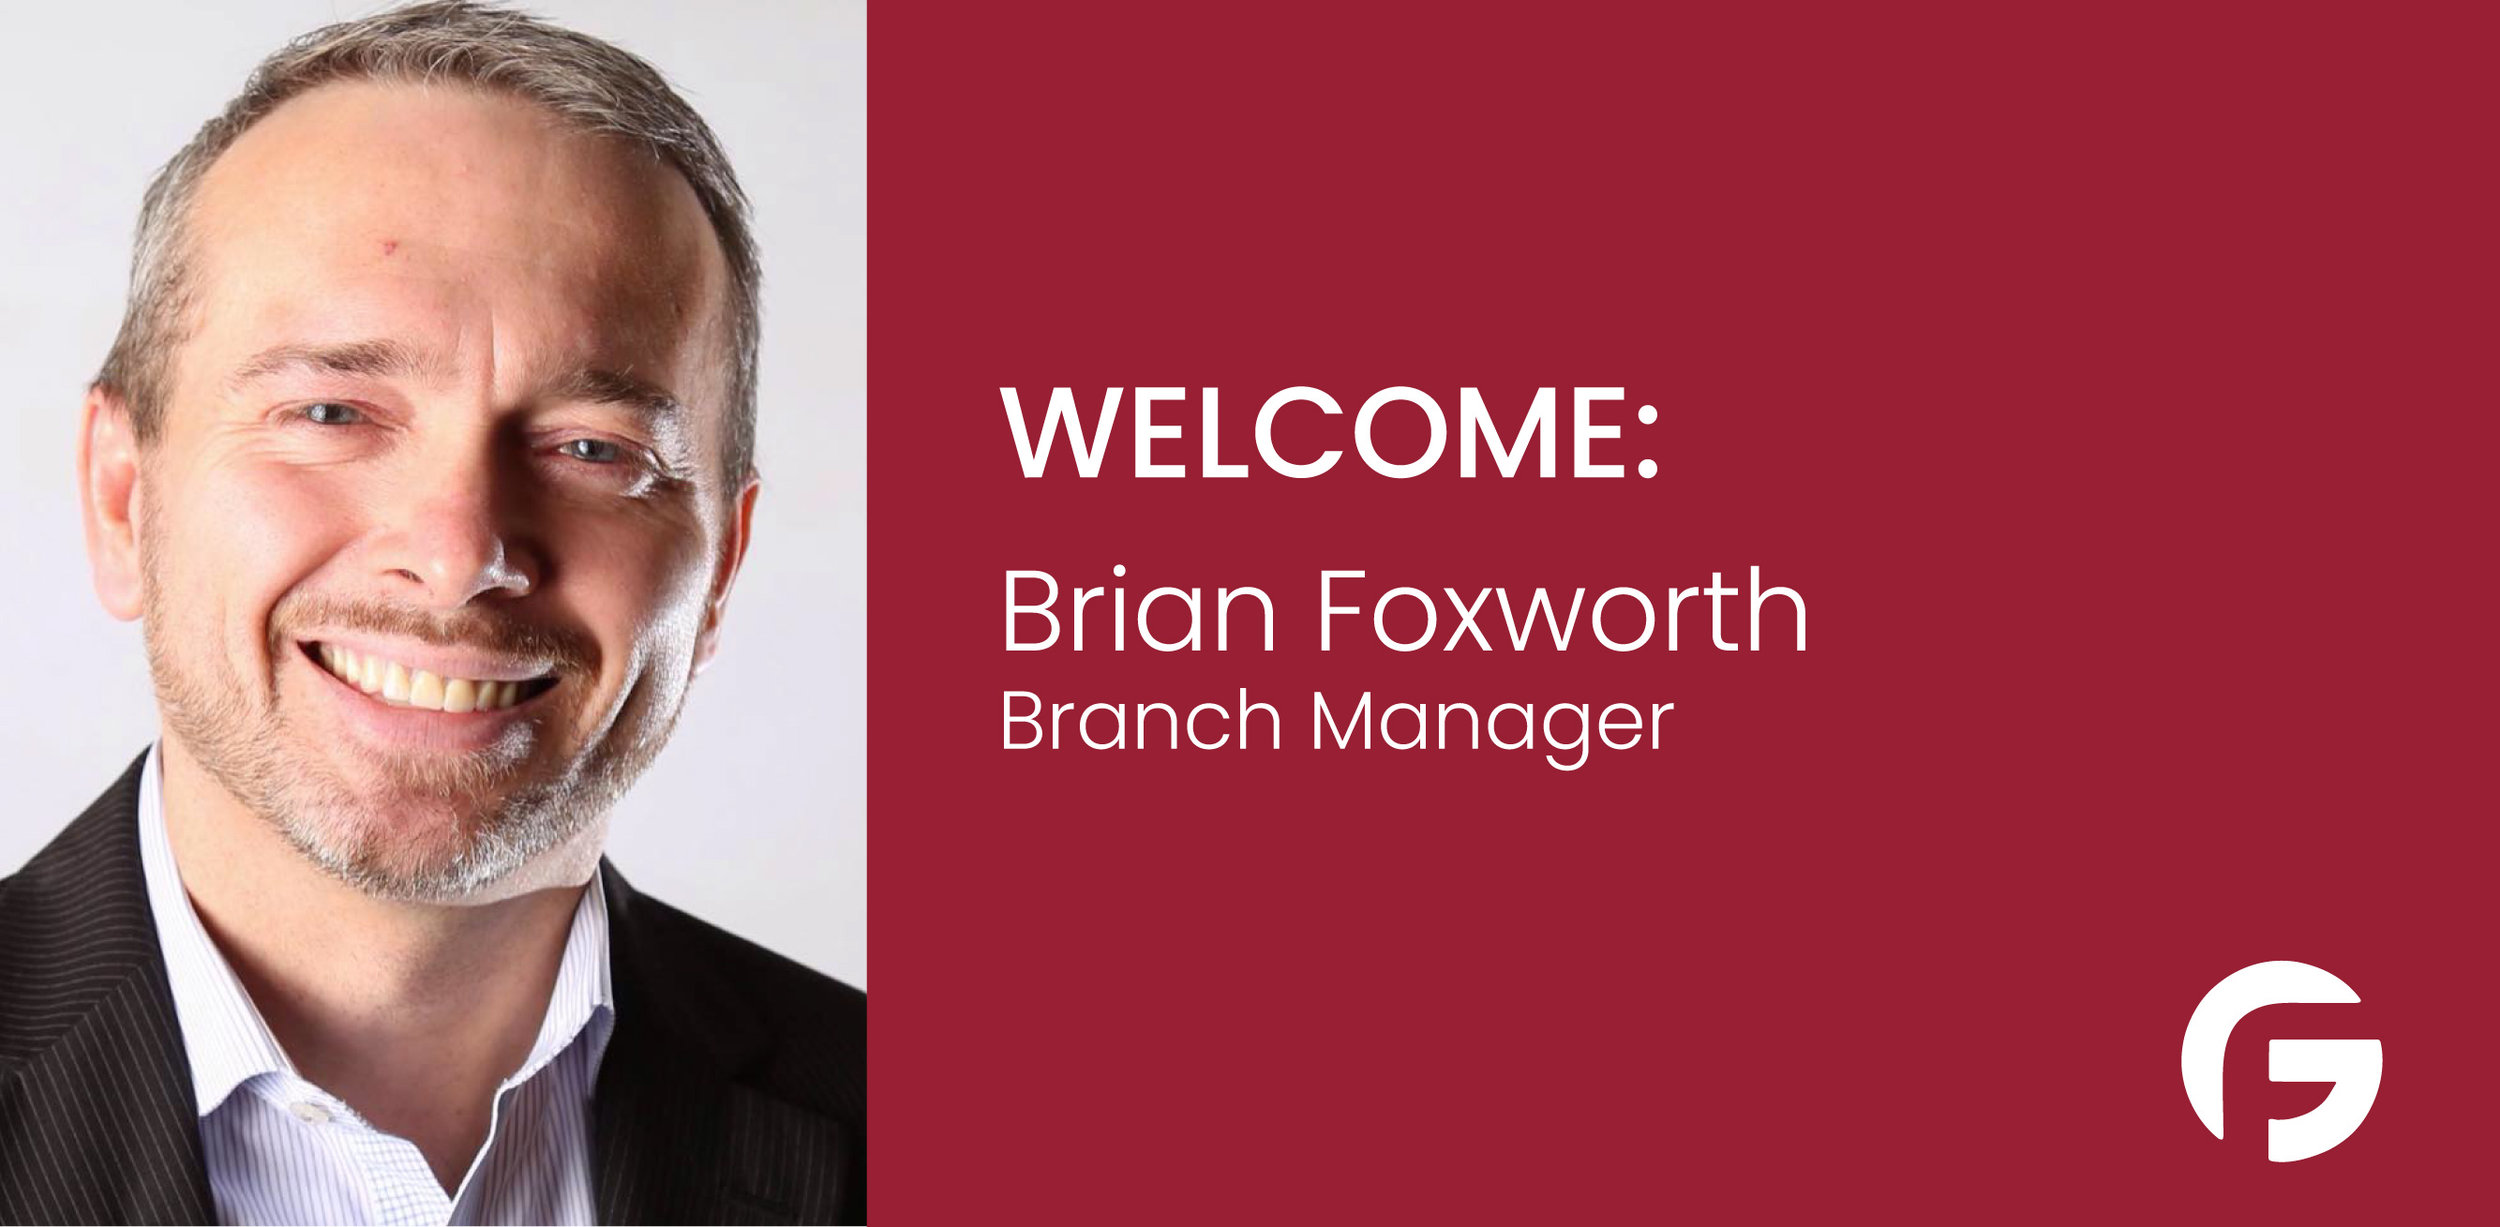 Brian Foxworth, Branch Manager and Loan Originator serving South Carolina